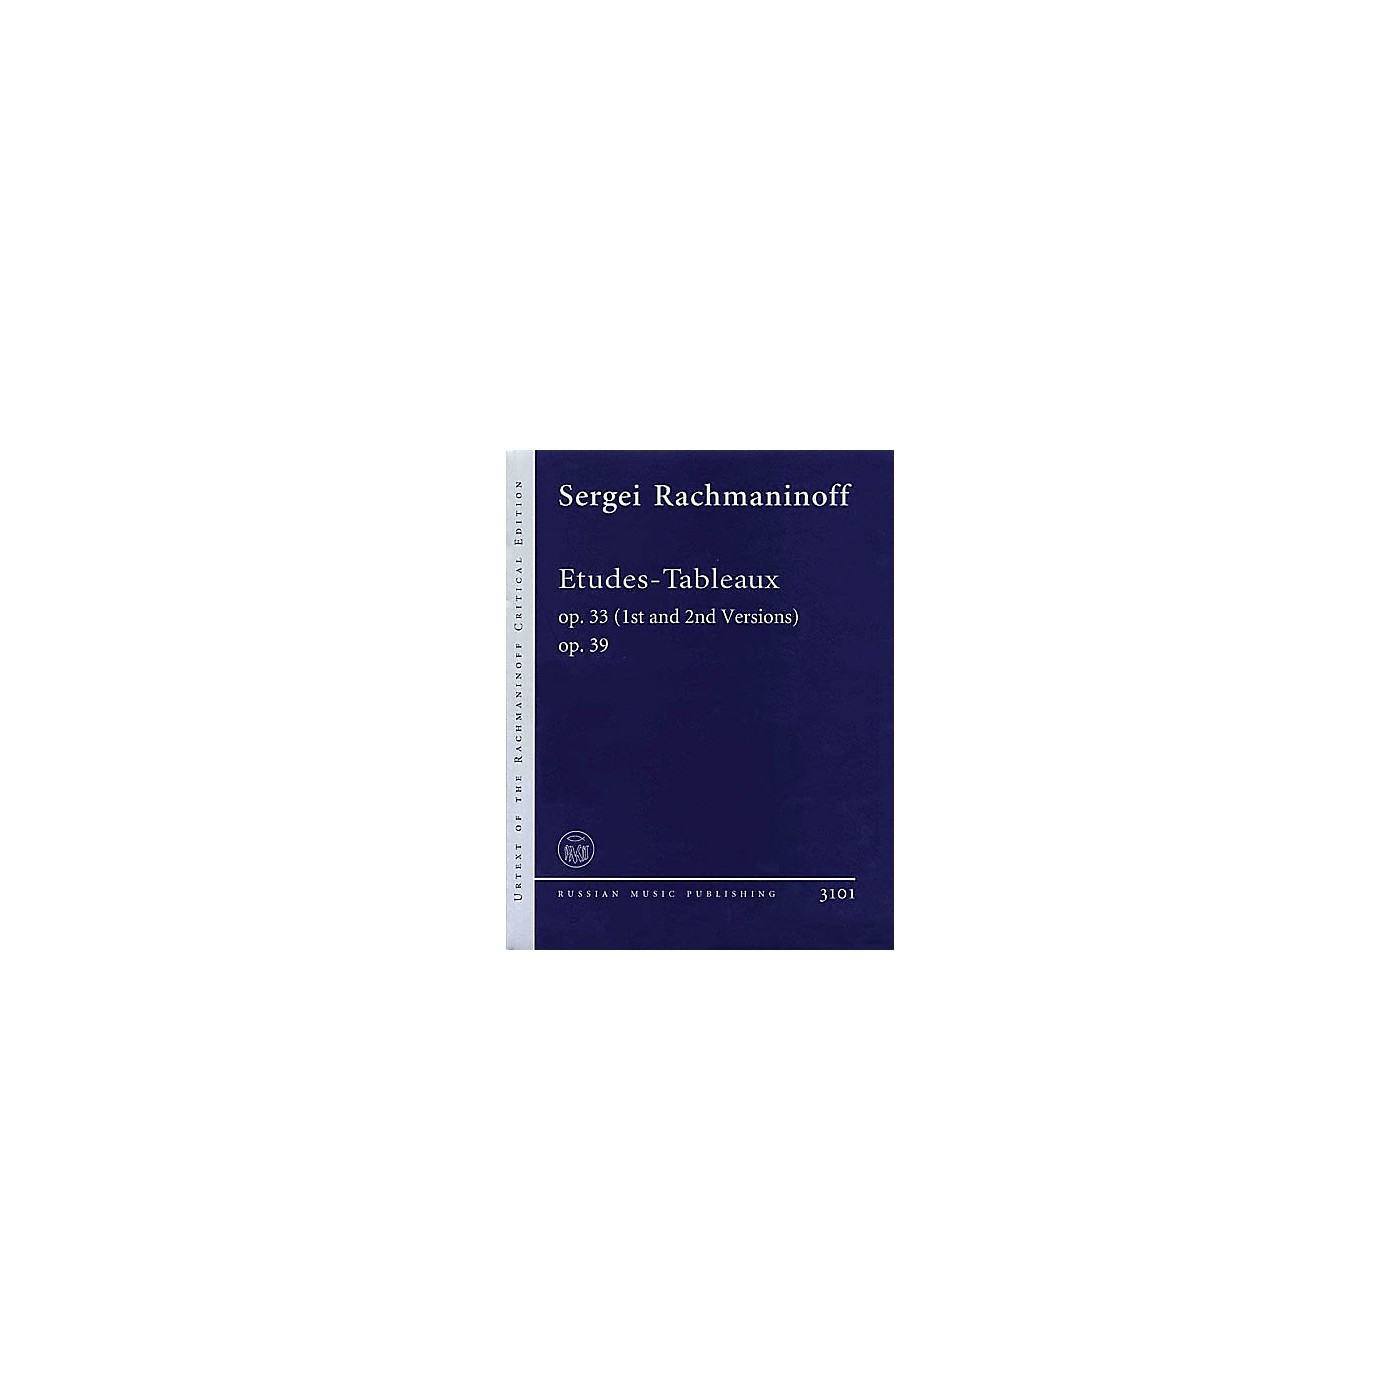 Russian Music Publishing/Boosey & Hawkes Etudes-Tableaux Op. 33 (1st and 2nd Versions), Op. 39 Misc Series Softcover by Sergei Rachmaninoff thumbnail